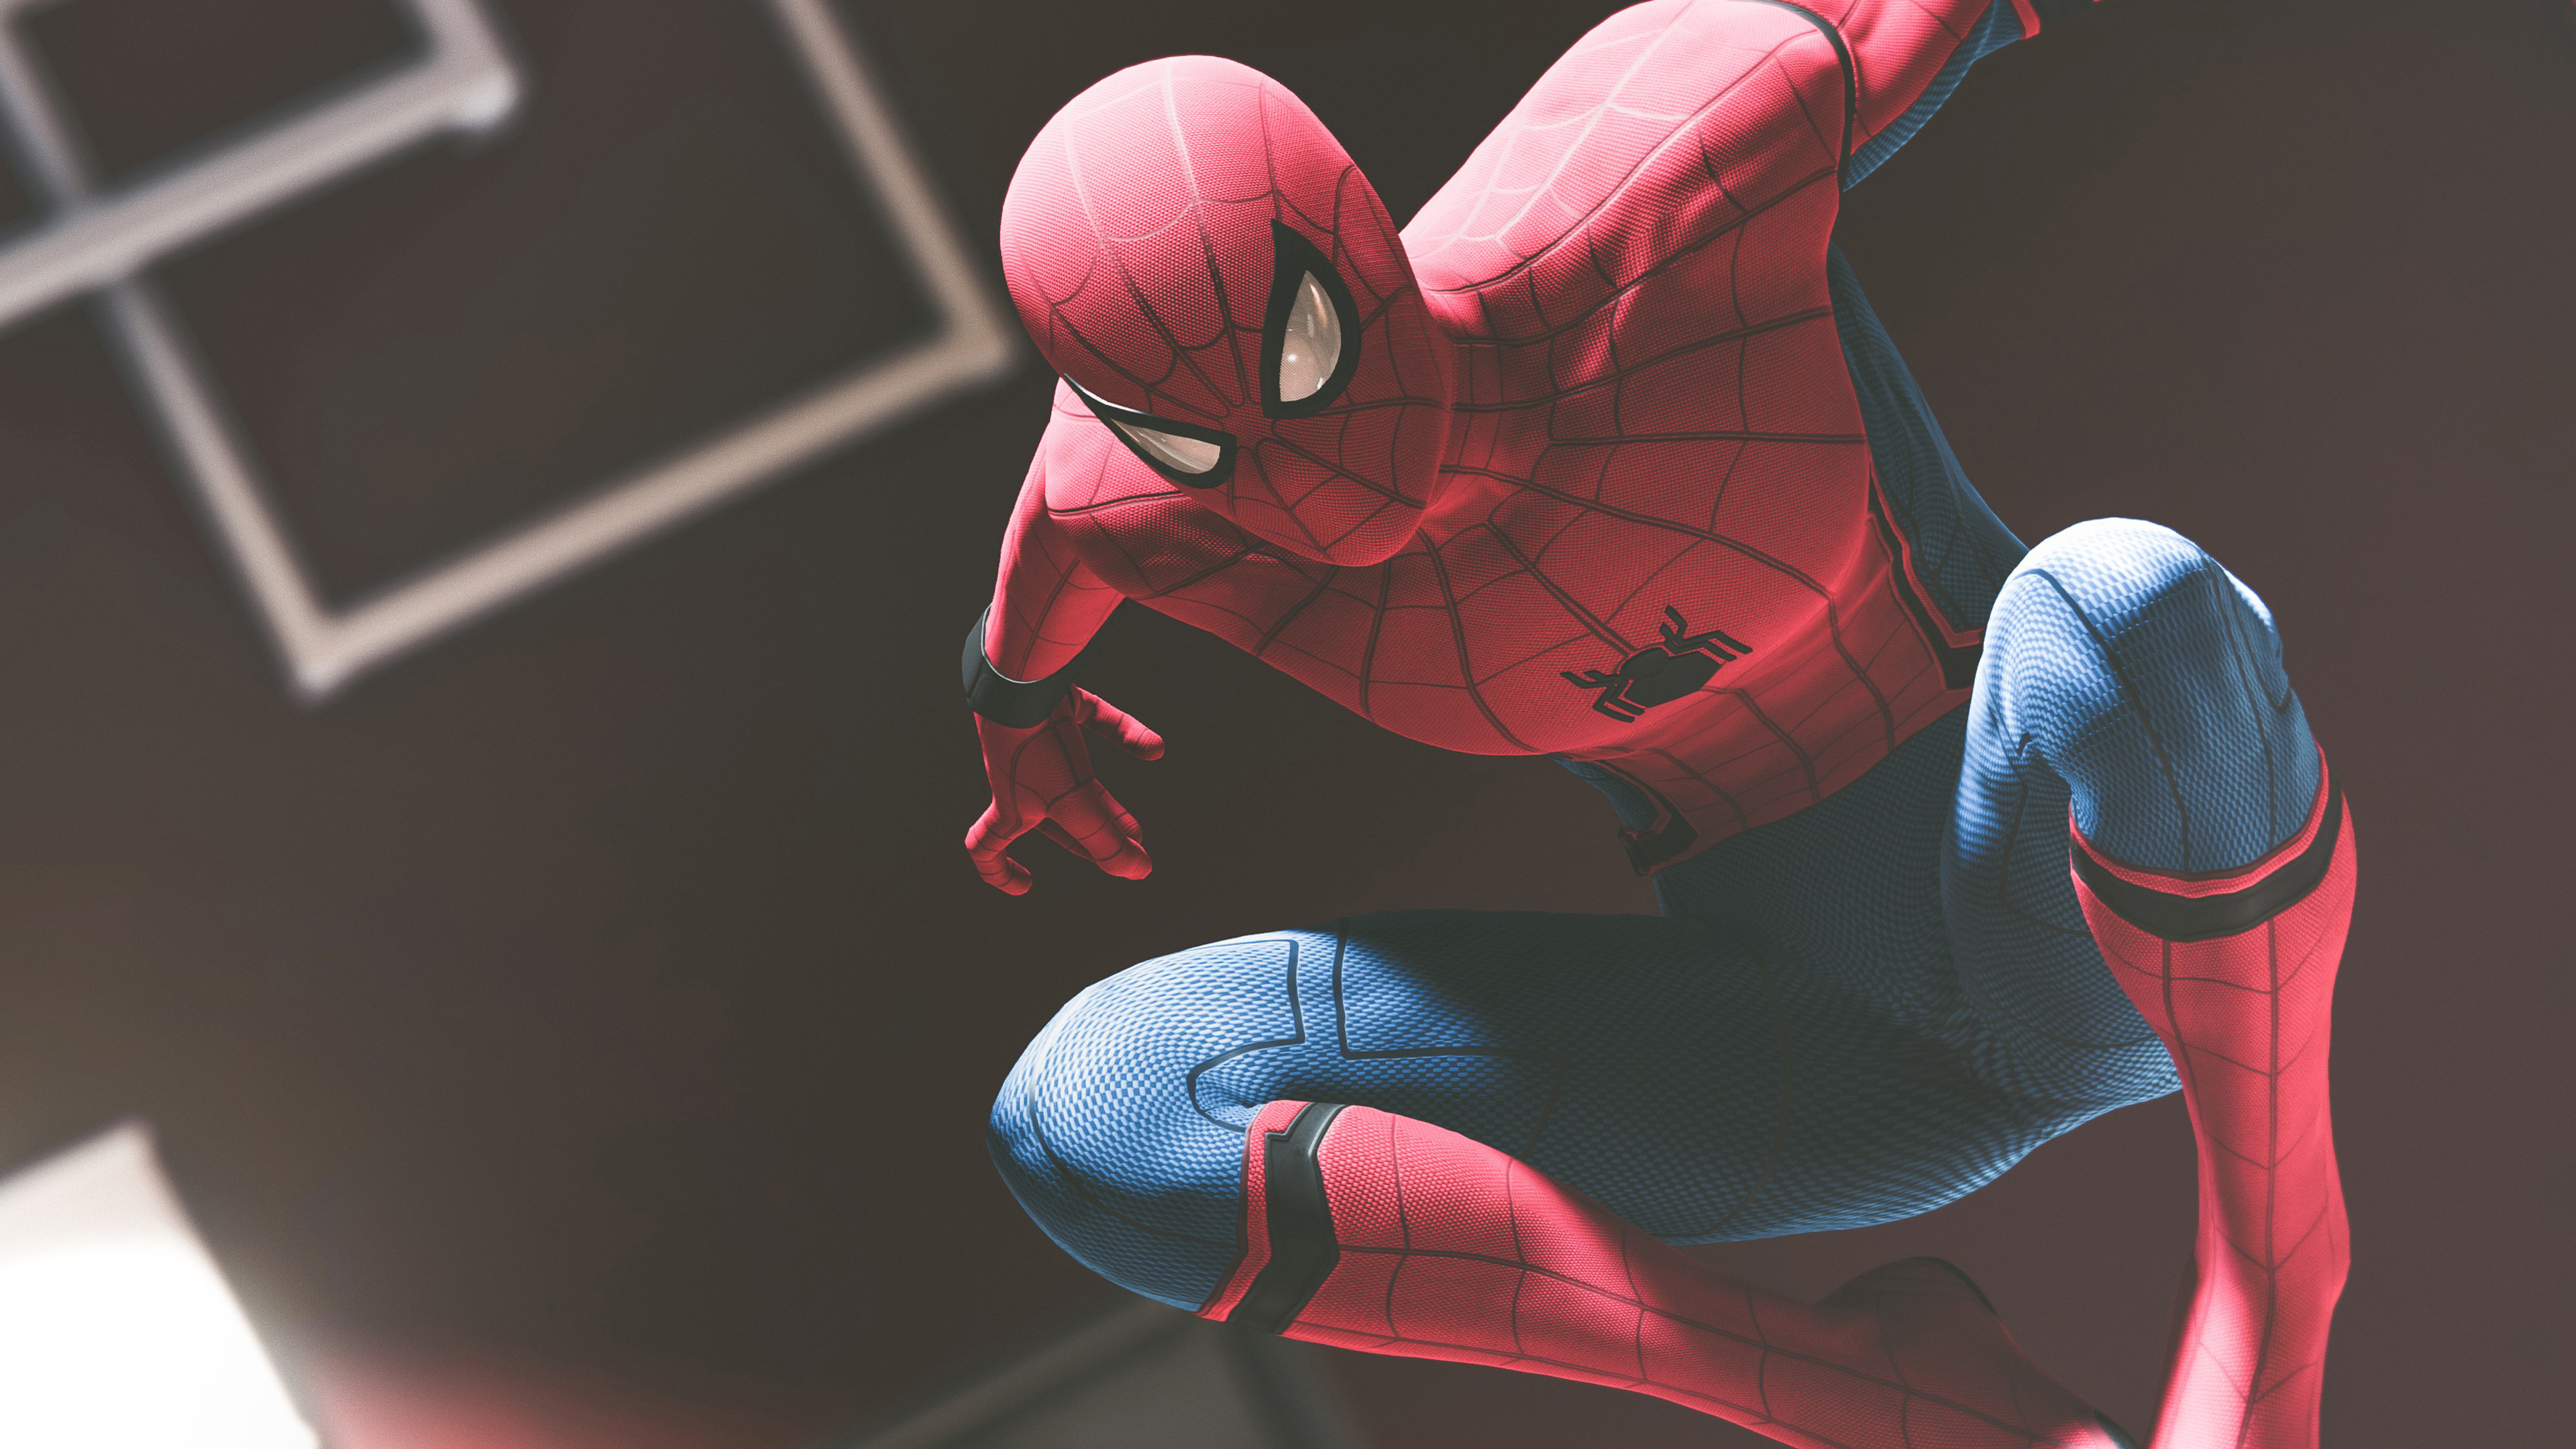 Marvel S Spider Man Wallpapers In Ultra Hd 4k Nuclearcoffee